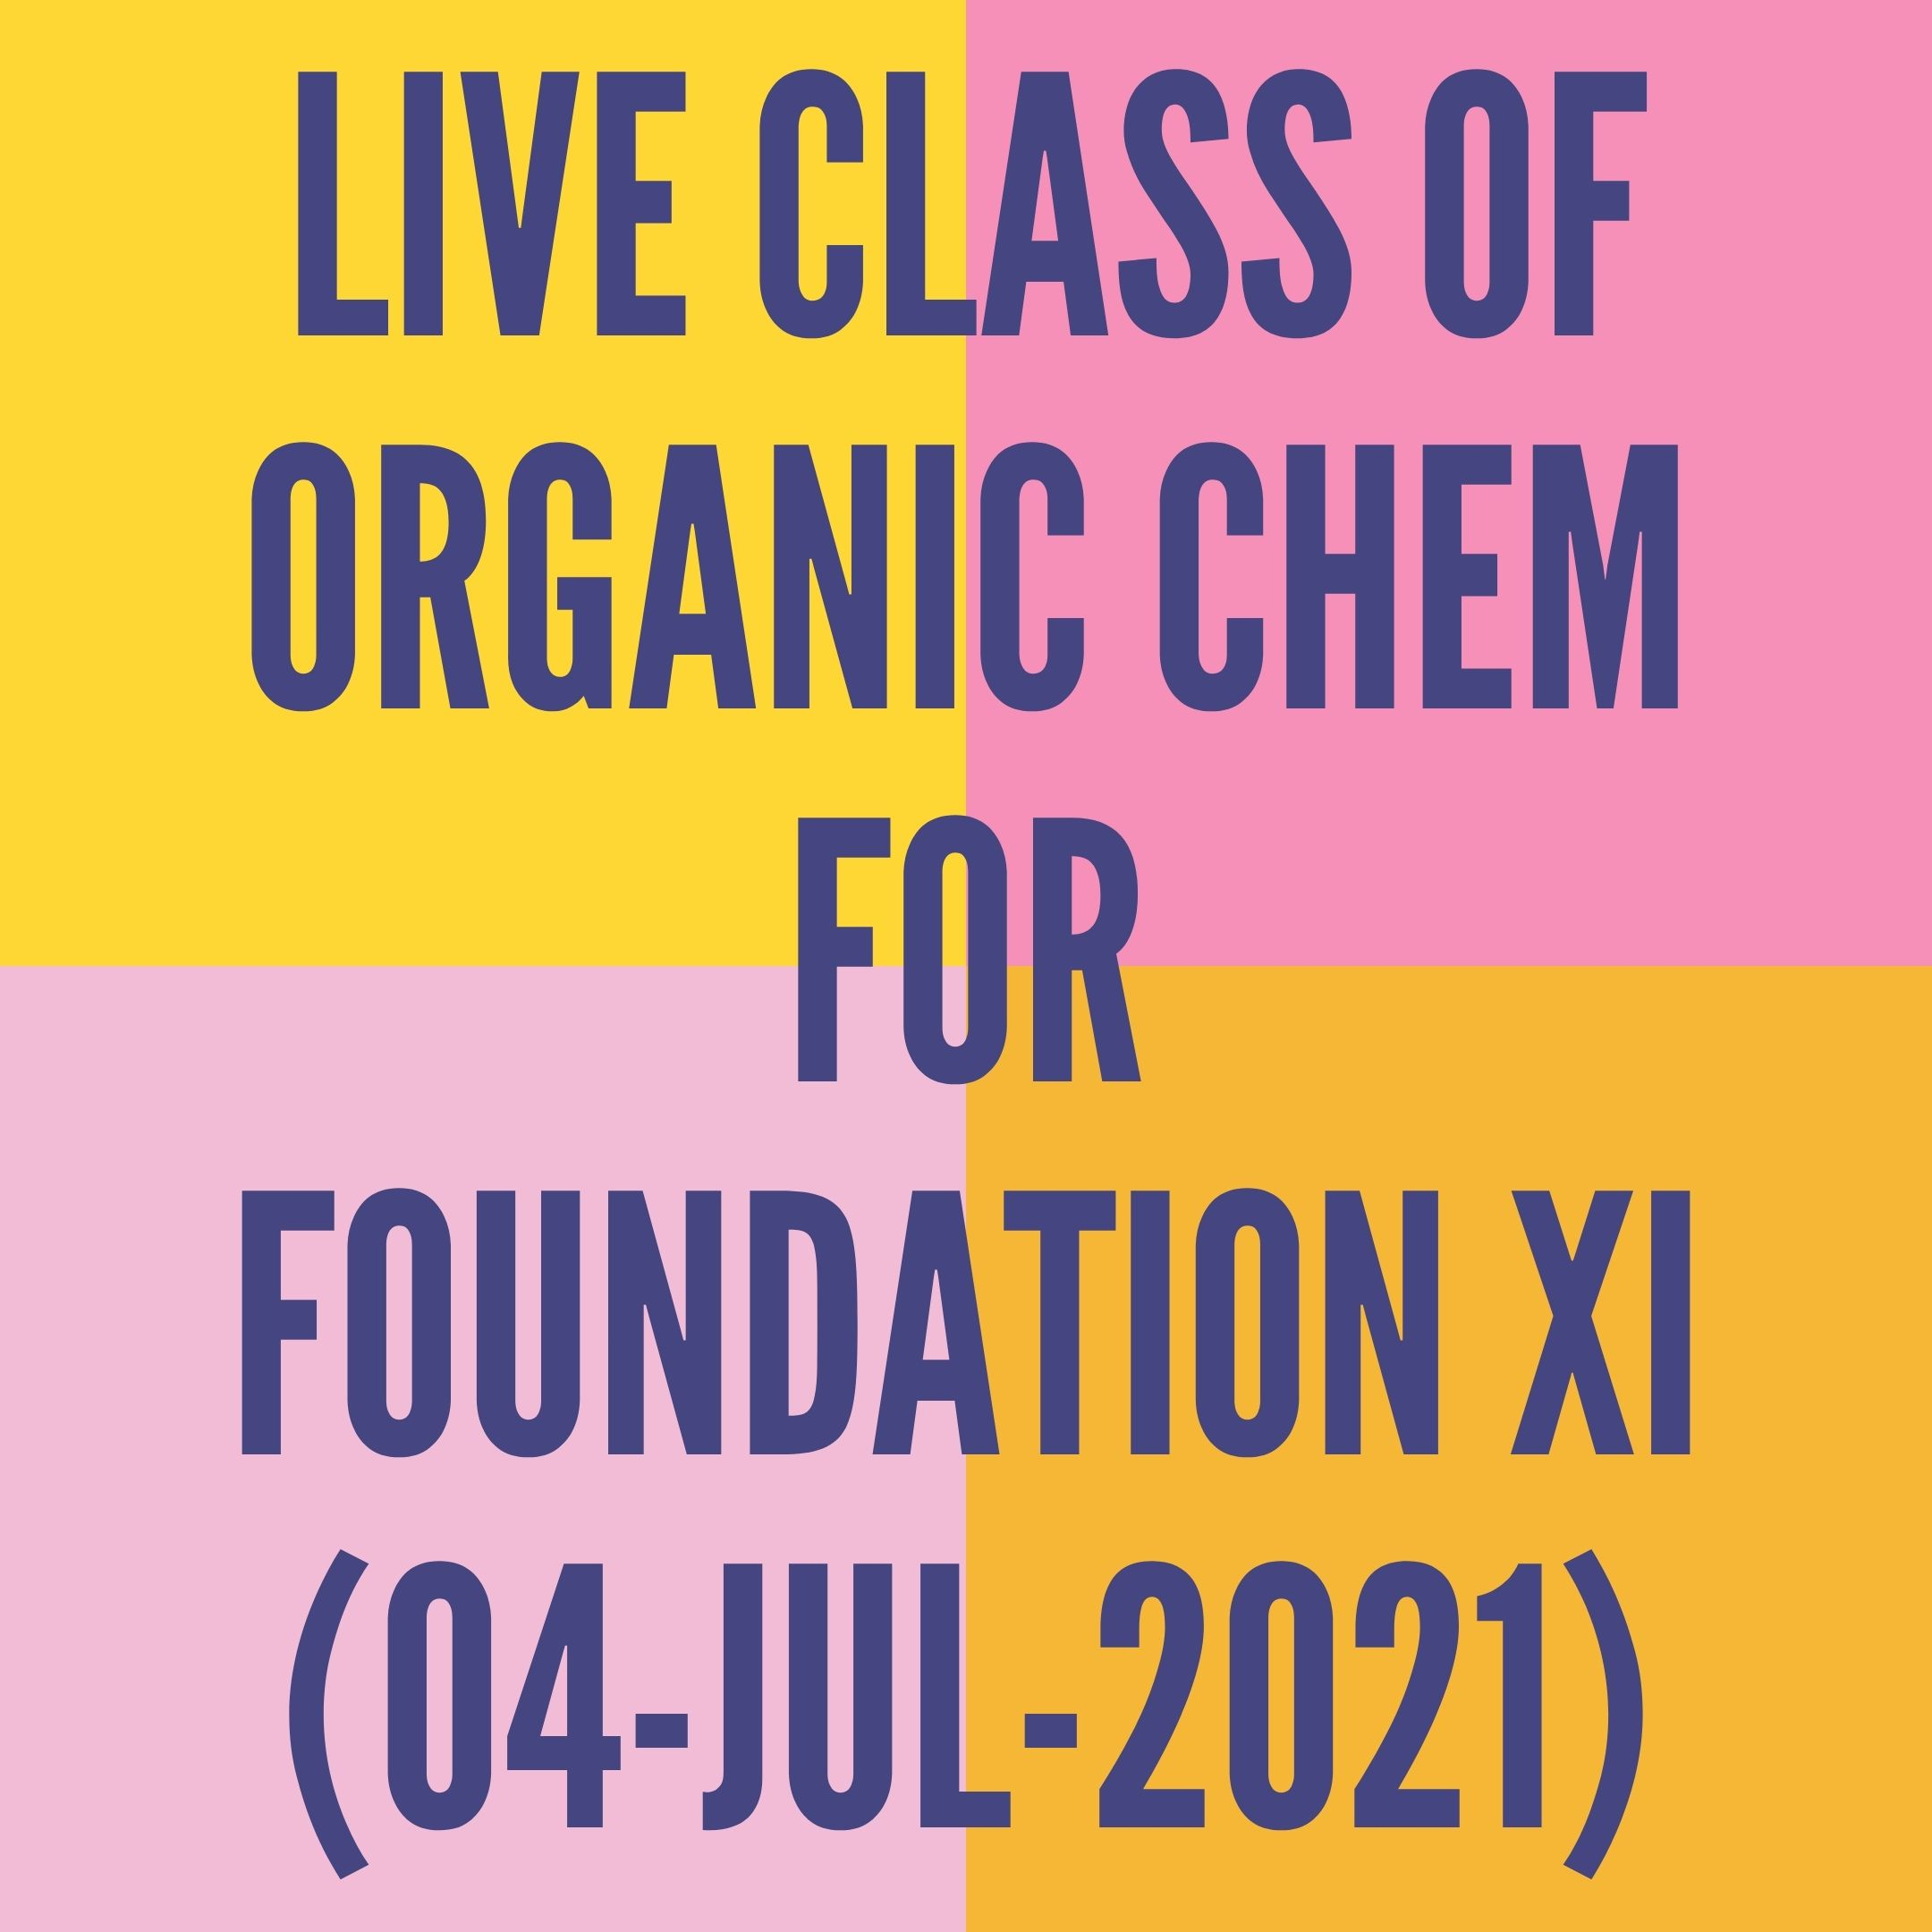 LIVE CLASS OF ORGANIC CHEMISTRY  FOR FOUNDATION XI (04-JUL-2021) NOMENCLATURE